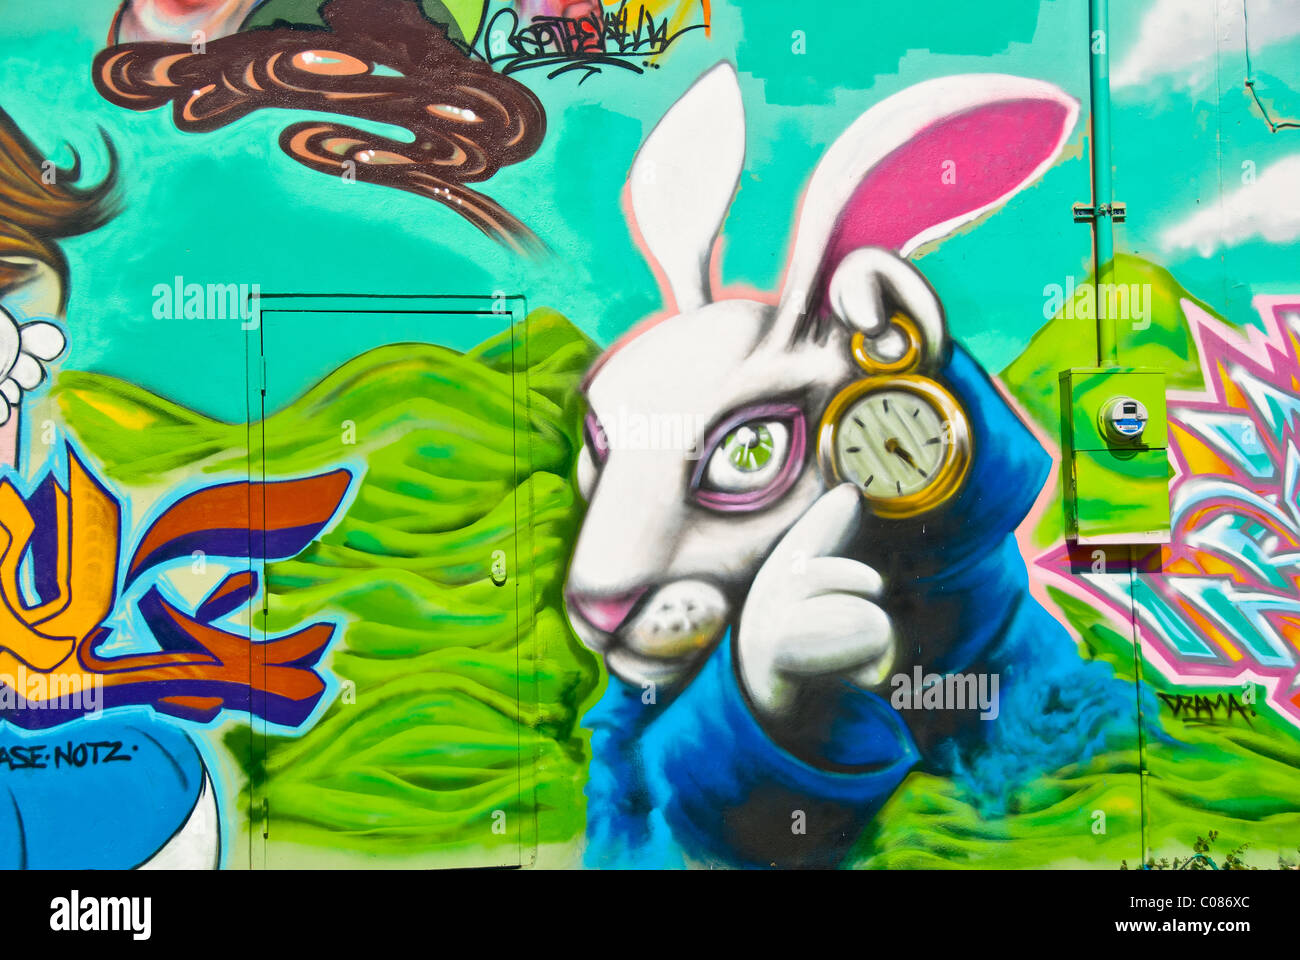 Alice in wonderland graffiti wall art mural detail in wynwood art alice in wonderland graffiti wall art mural detail in wynwood art district of miami florida usa amipublicfo Images